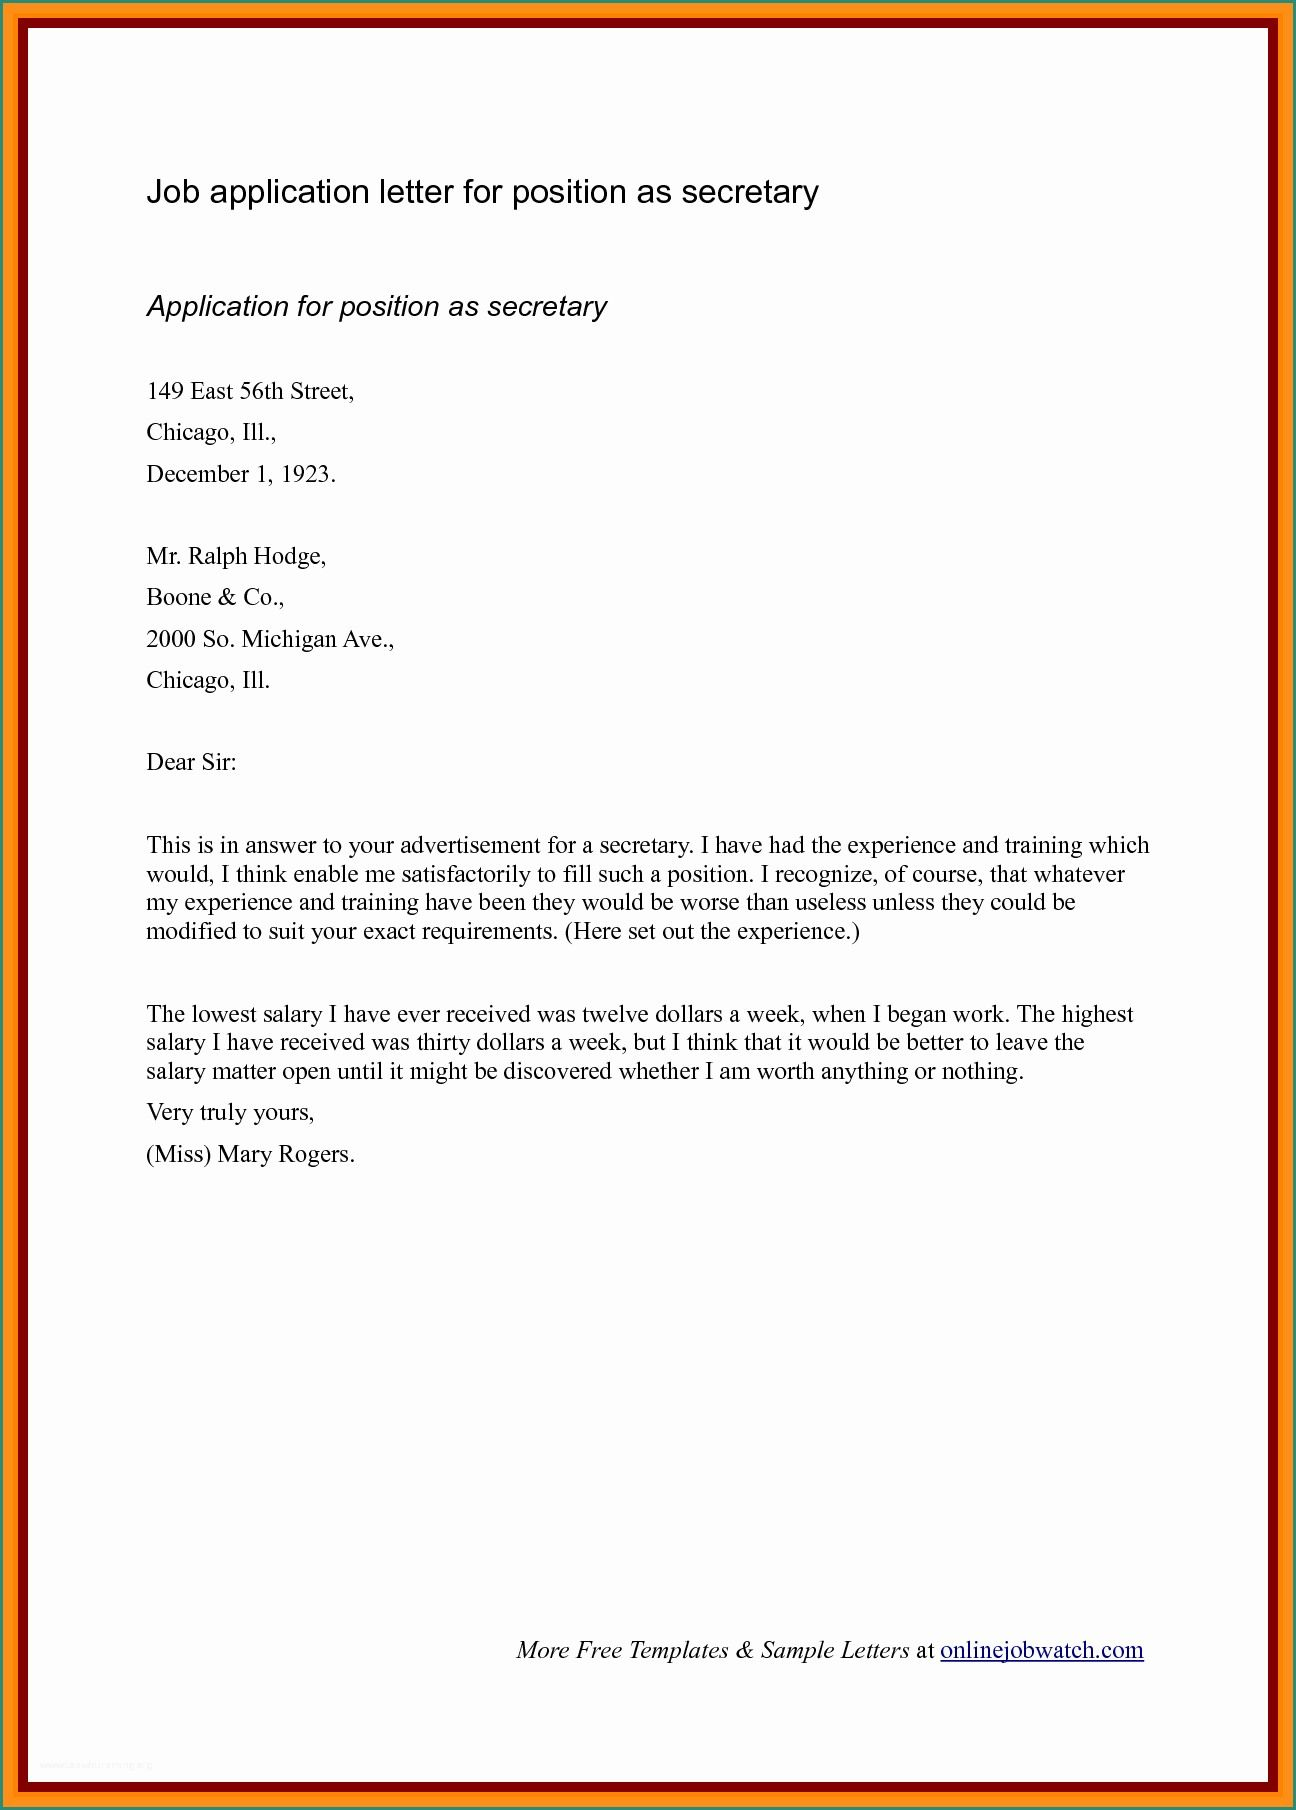 23+ Short Cover Letter Examples in 2020 Cover letter for